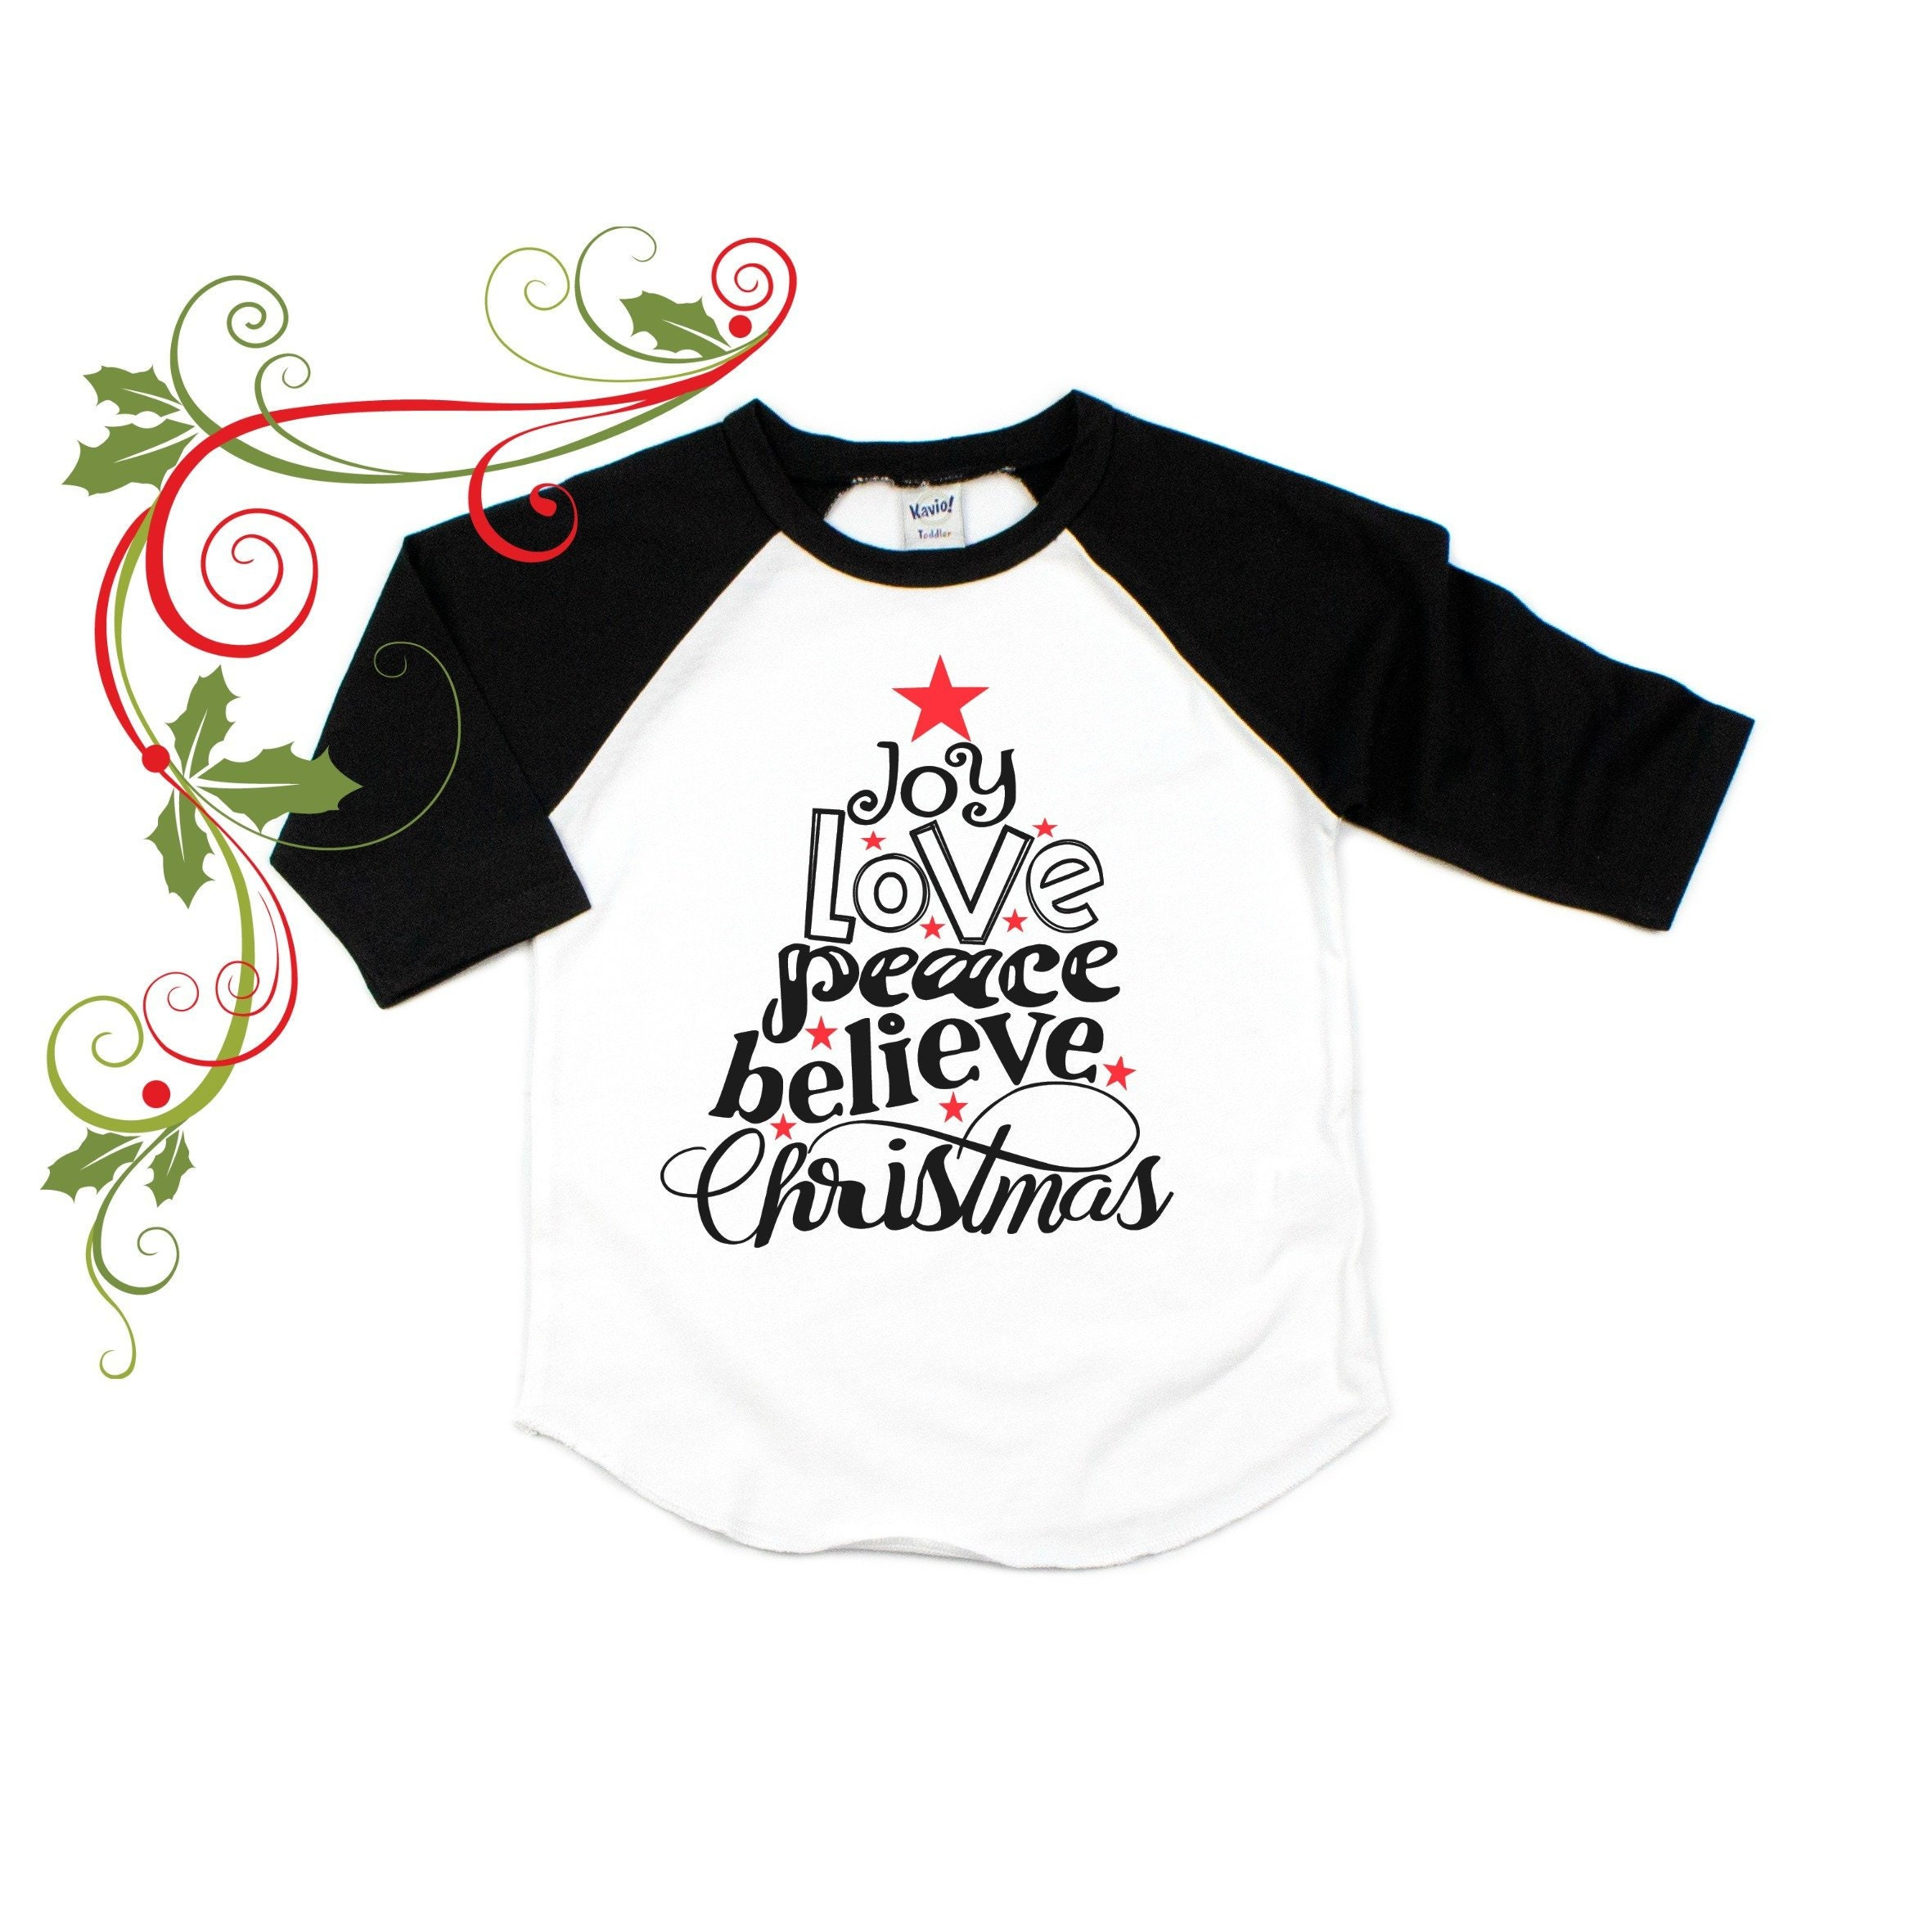 c419d87d9780 Joy Love Peace and Believe Christmas Shirt For Kids | Etsy